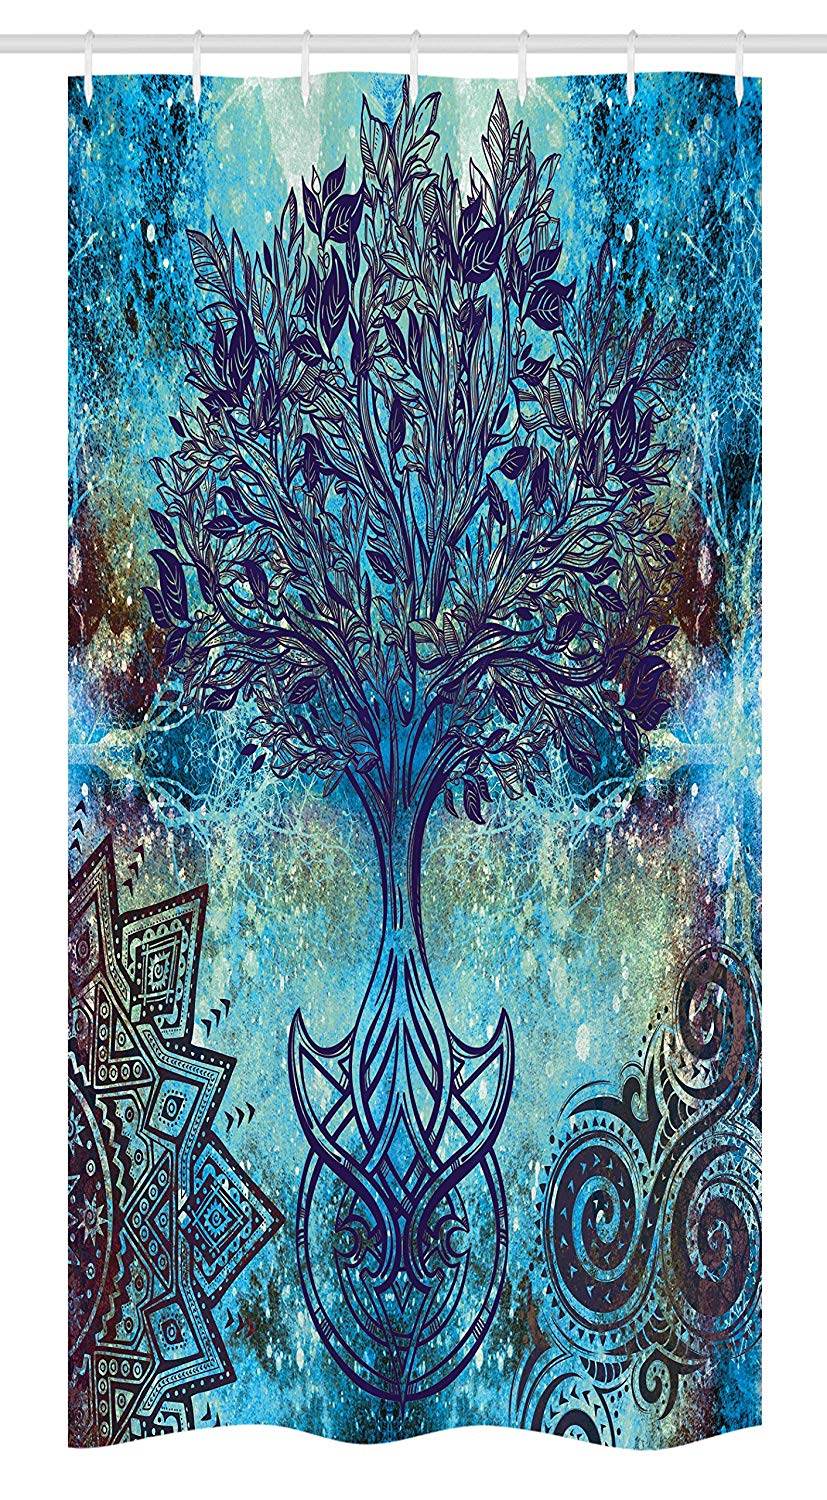 Ambesonne Bohemian Stall Shower Curtain, Grunge Style Tree Pattern with Ethnic Mandala and Spiral Shapes Blurry Artwork, Fabric Bathroom Decor Set with Hooks, 36 W x 72 L Inches, Turquoise Brown